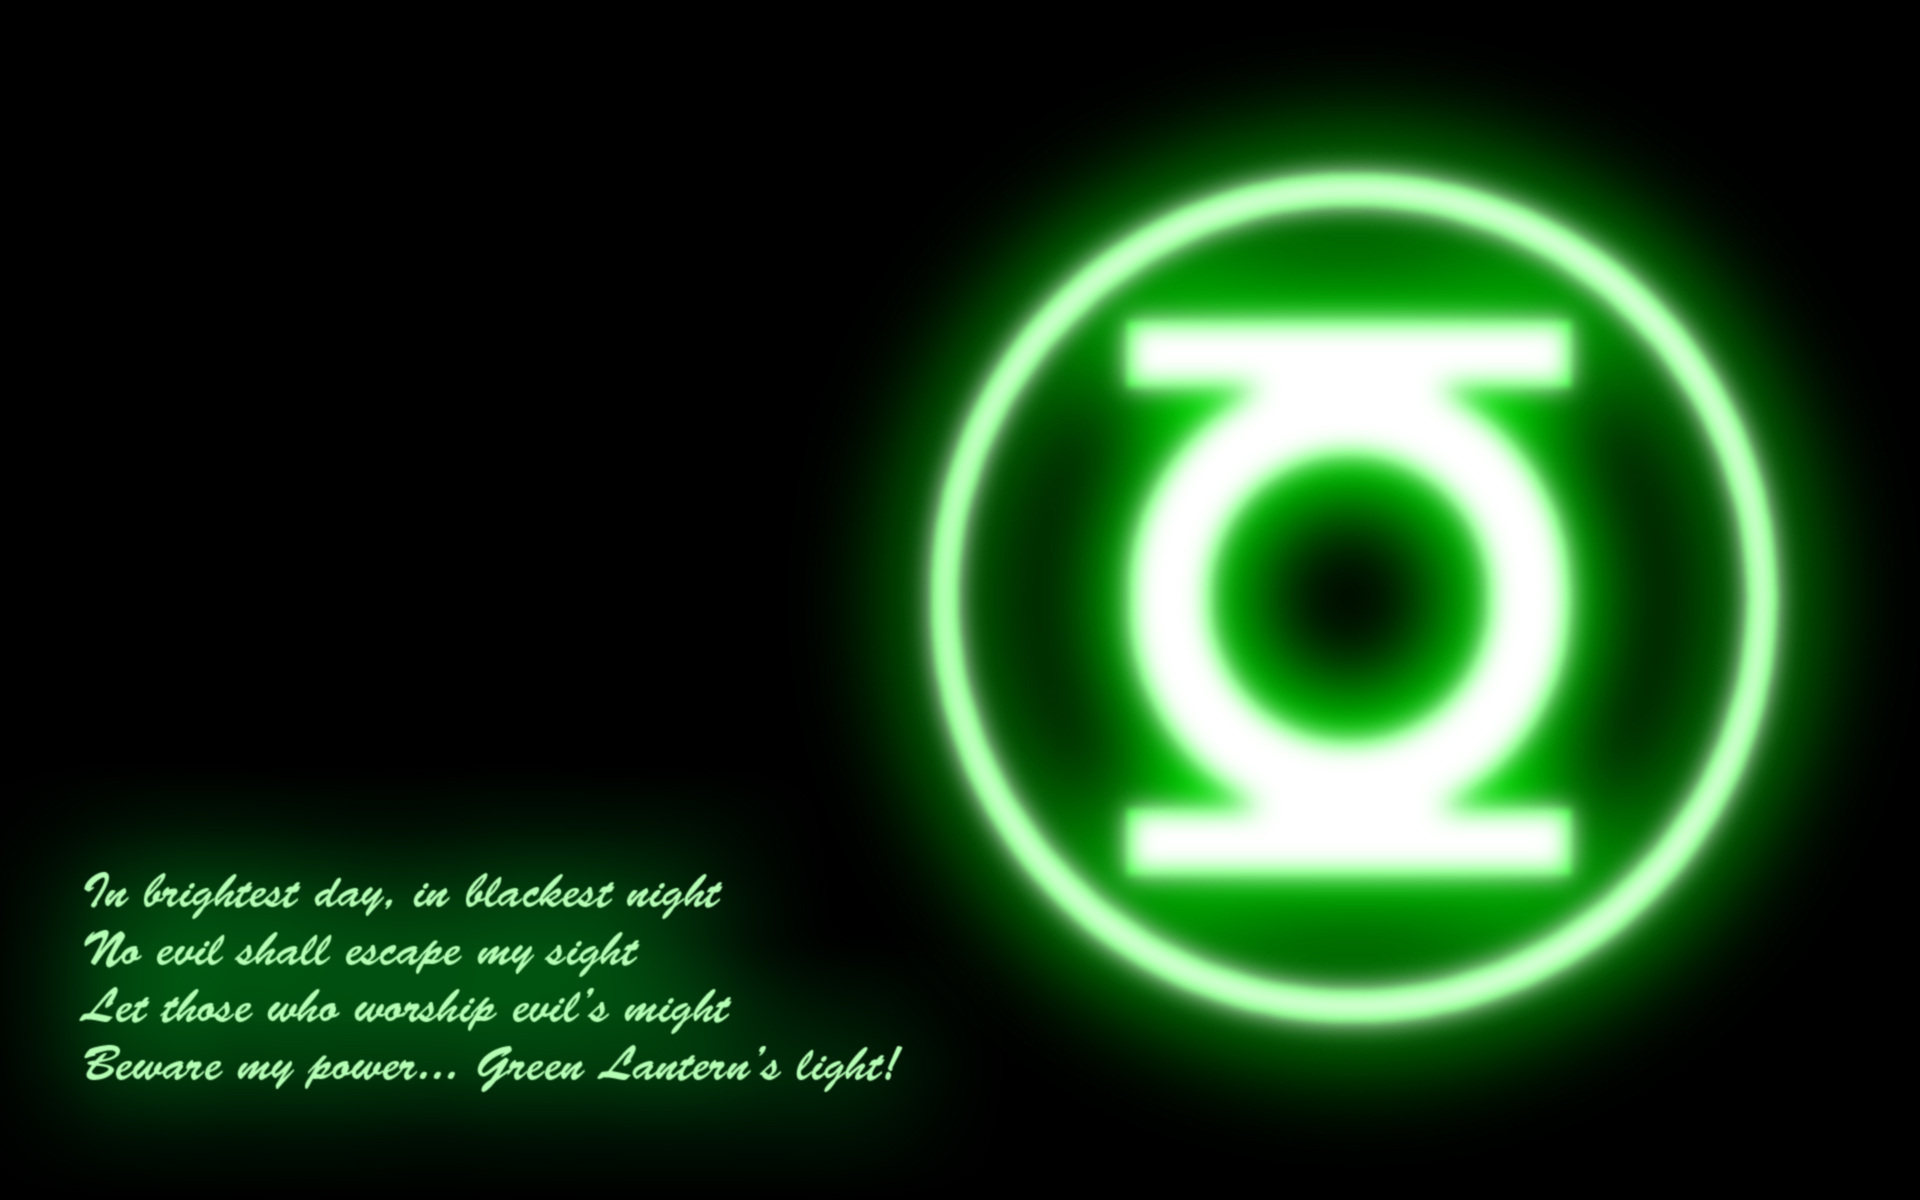 Create Iphone Wallpaper Quote Green Lantern Full Hd Wallpaper And Background Image